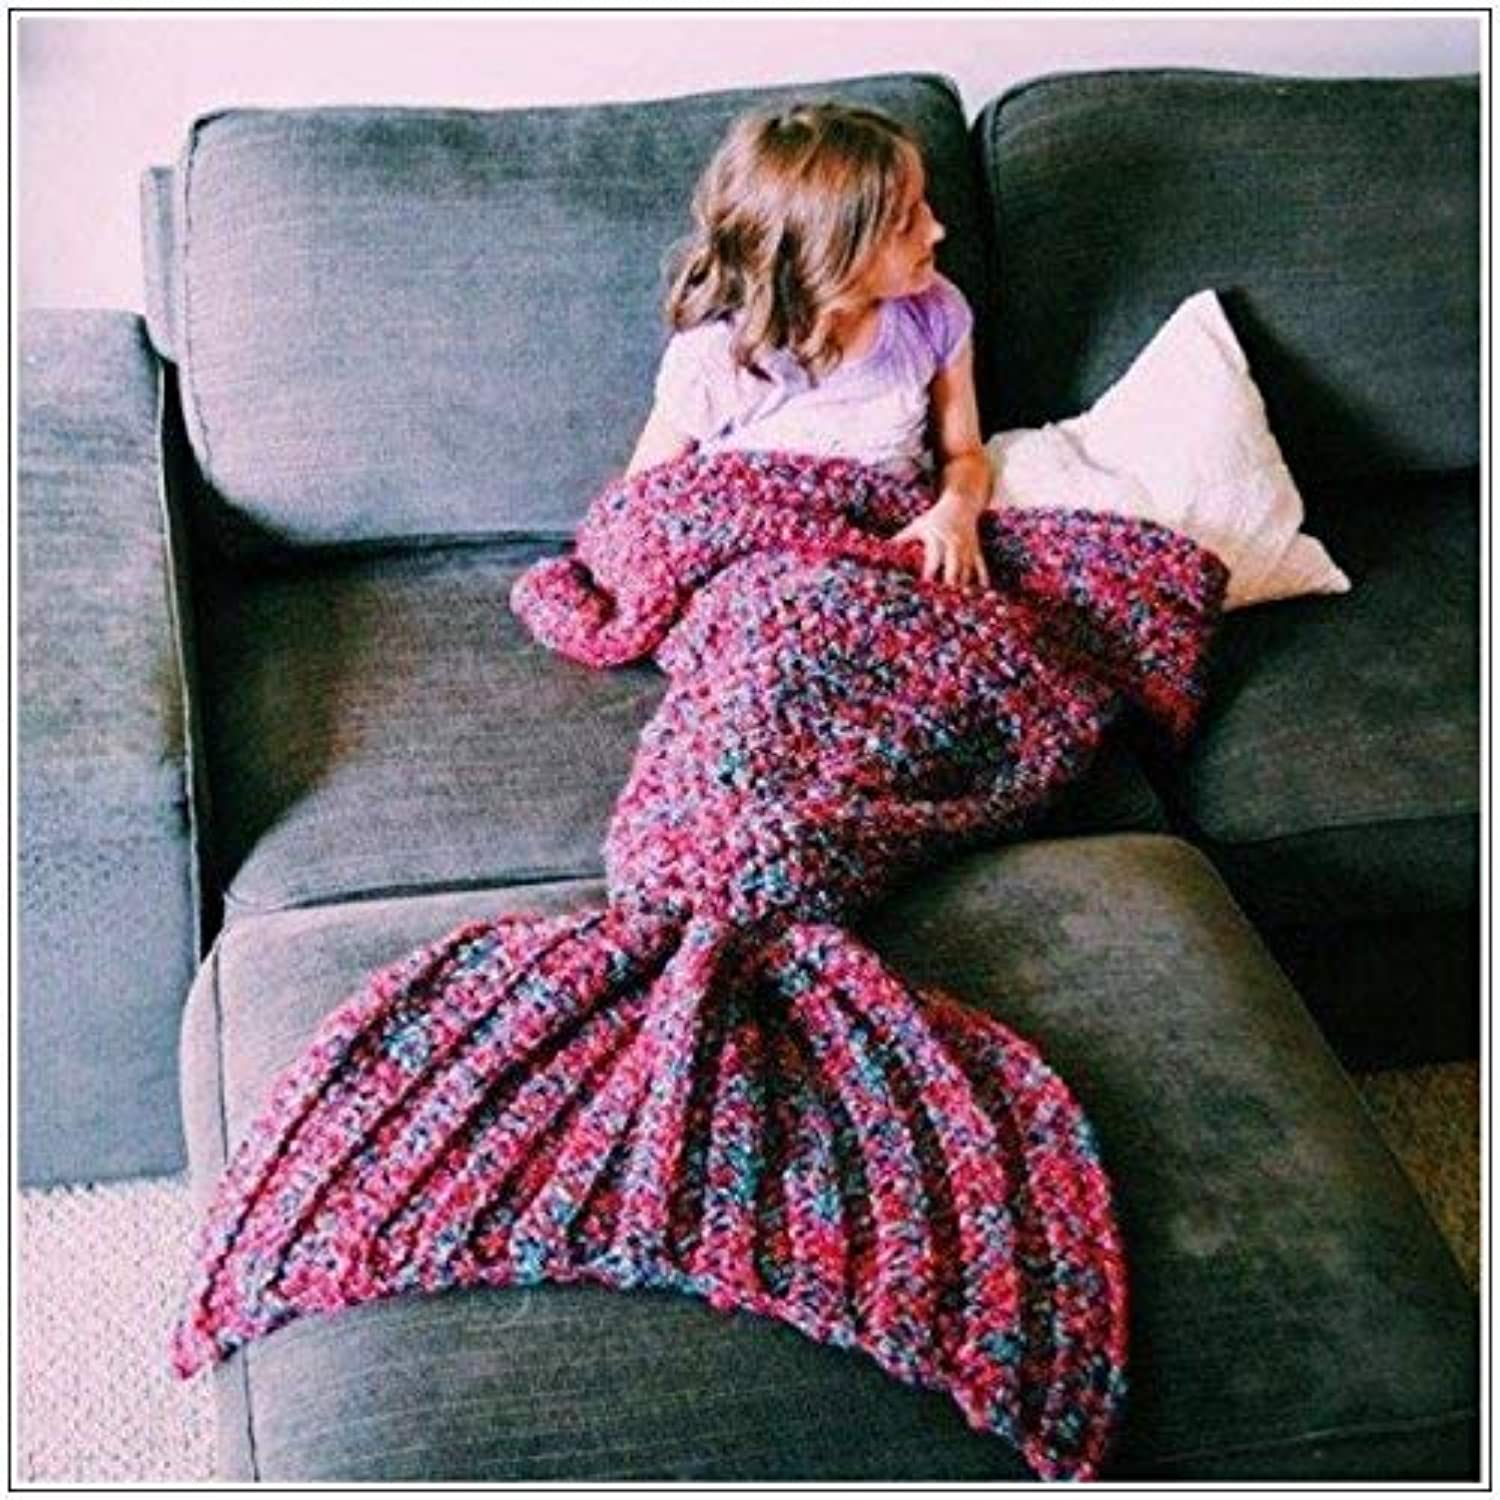 JINGB Home Mermaid Tail Sofa Handmade Wool Knit Mermaid, Single Layer bluee, 90  40CM (35.4  15.7 inch)